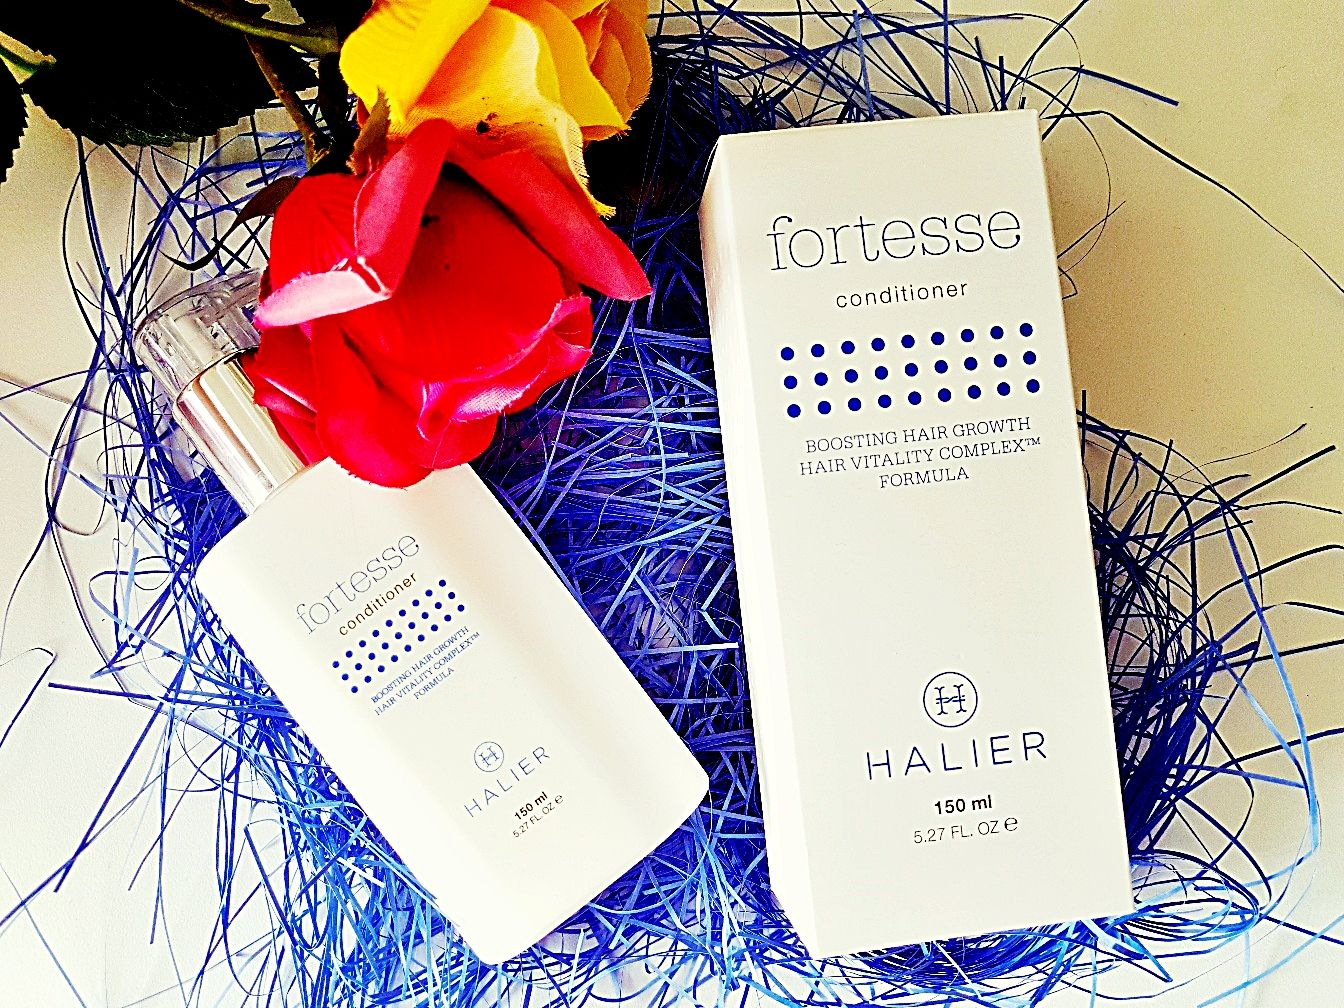 Halier fortesse Condtioner